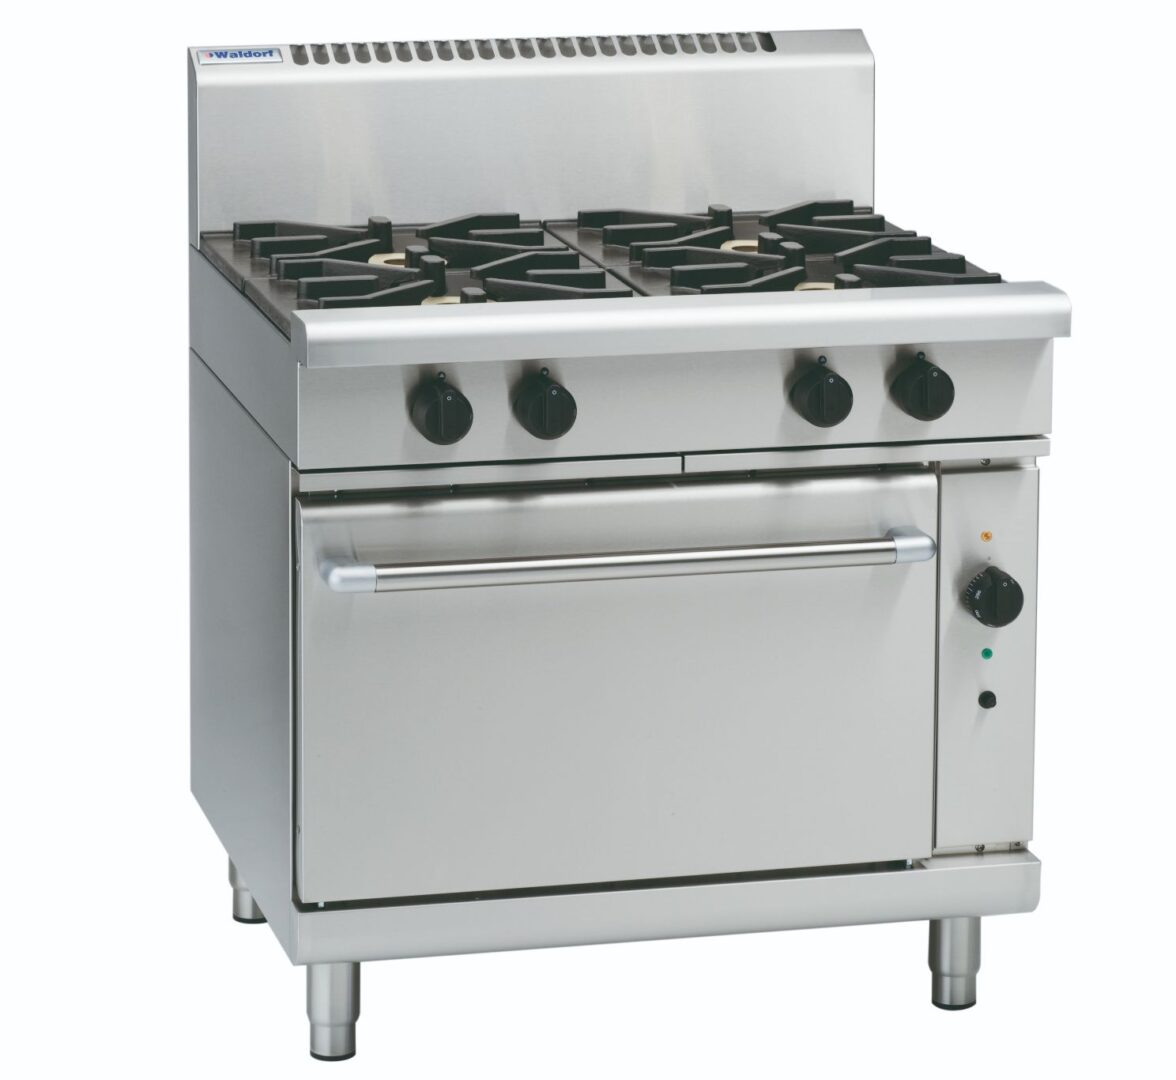 Waldorf 800 Series RNL8910GC – 900mm Gas Range Convection Oven Low Back Version